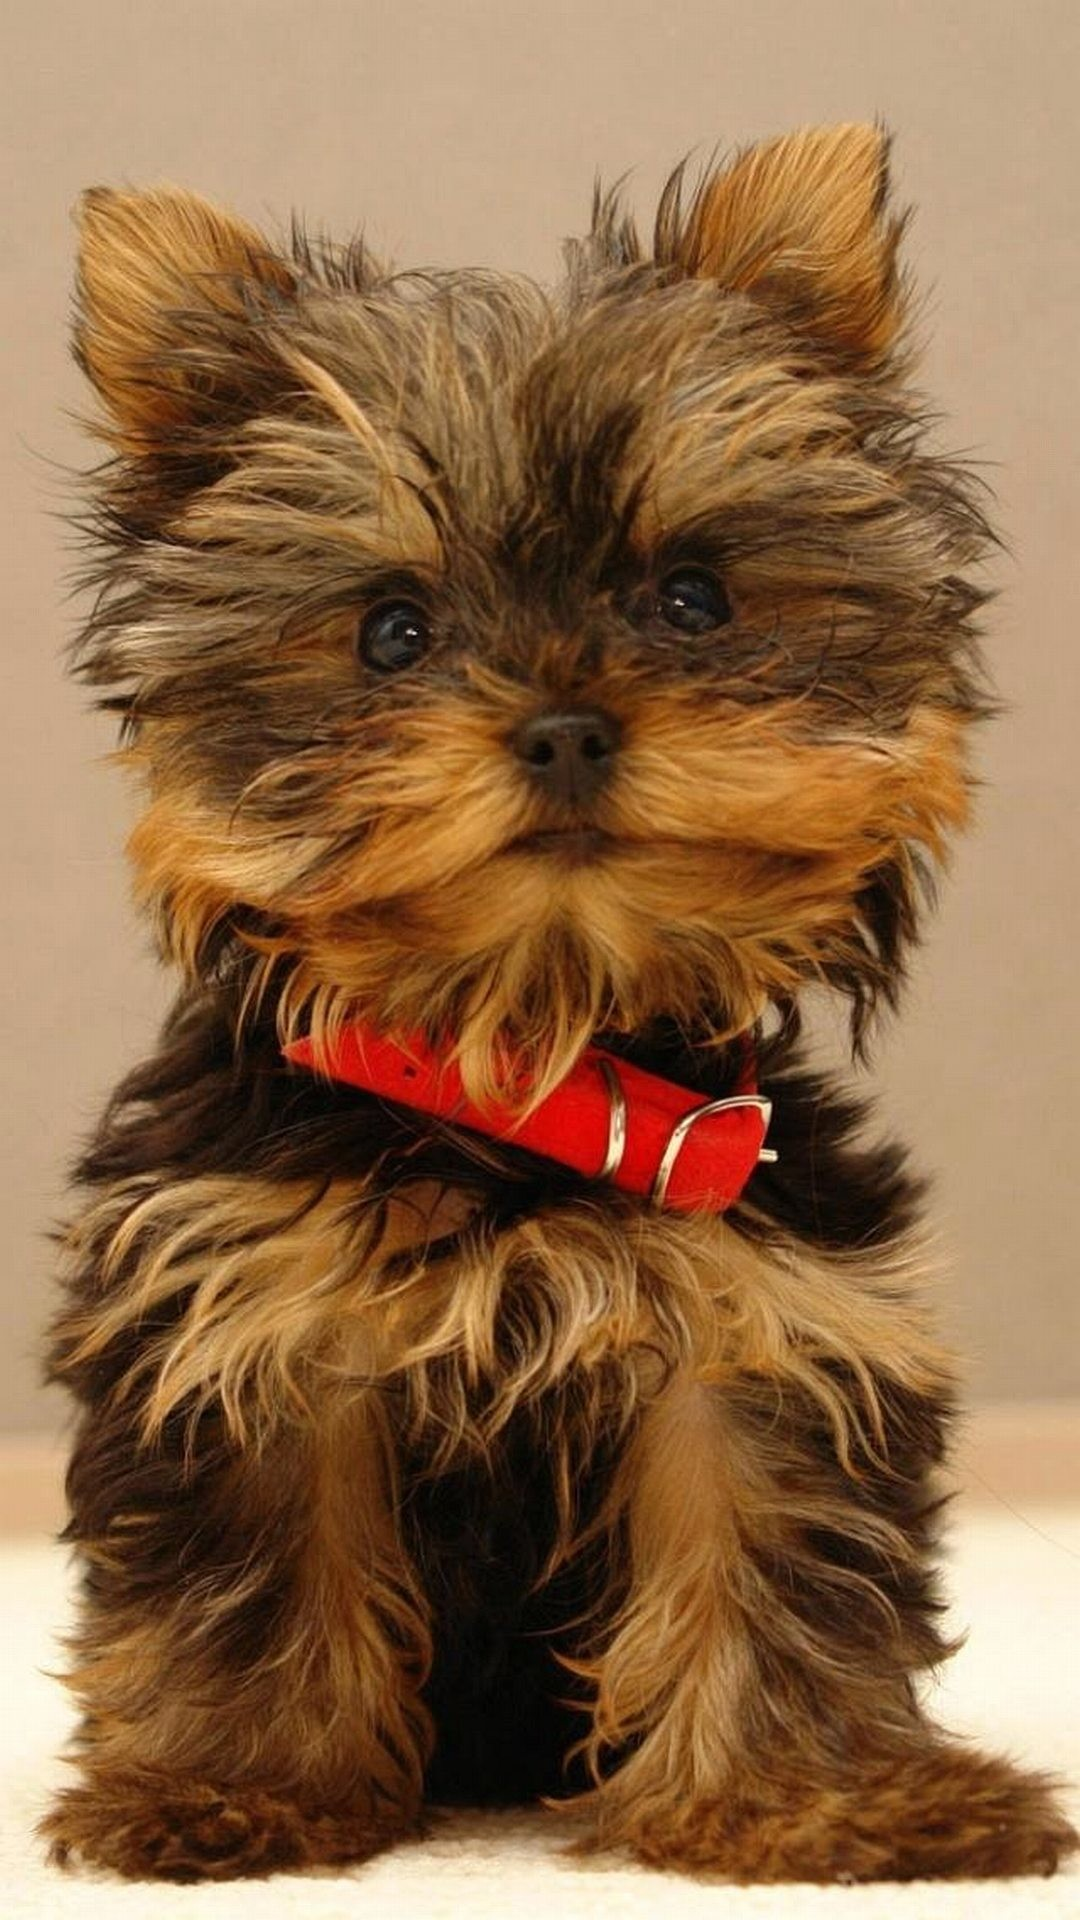 Yorkshire Terrier Cute Puppy Android Wallpaper …